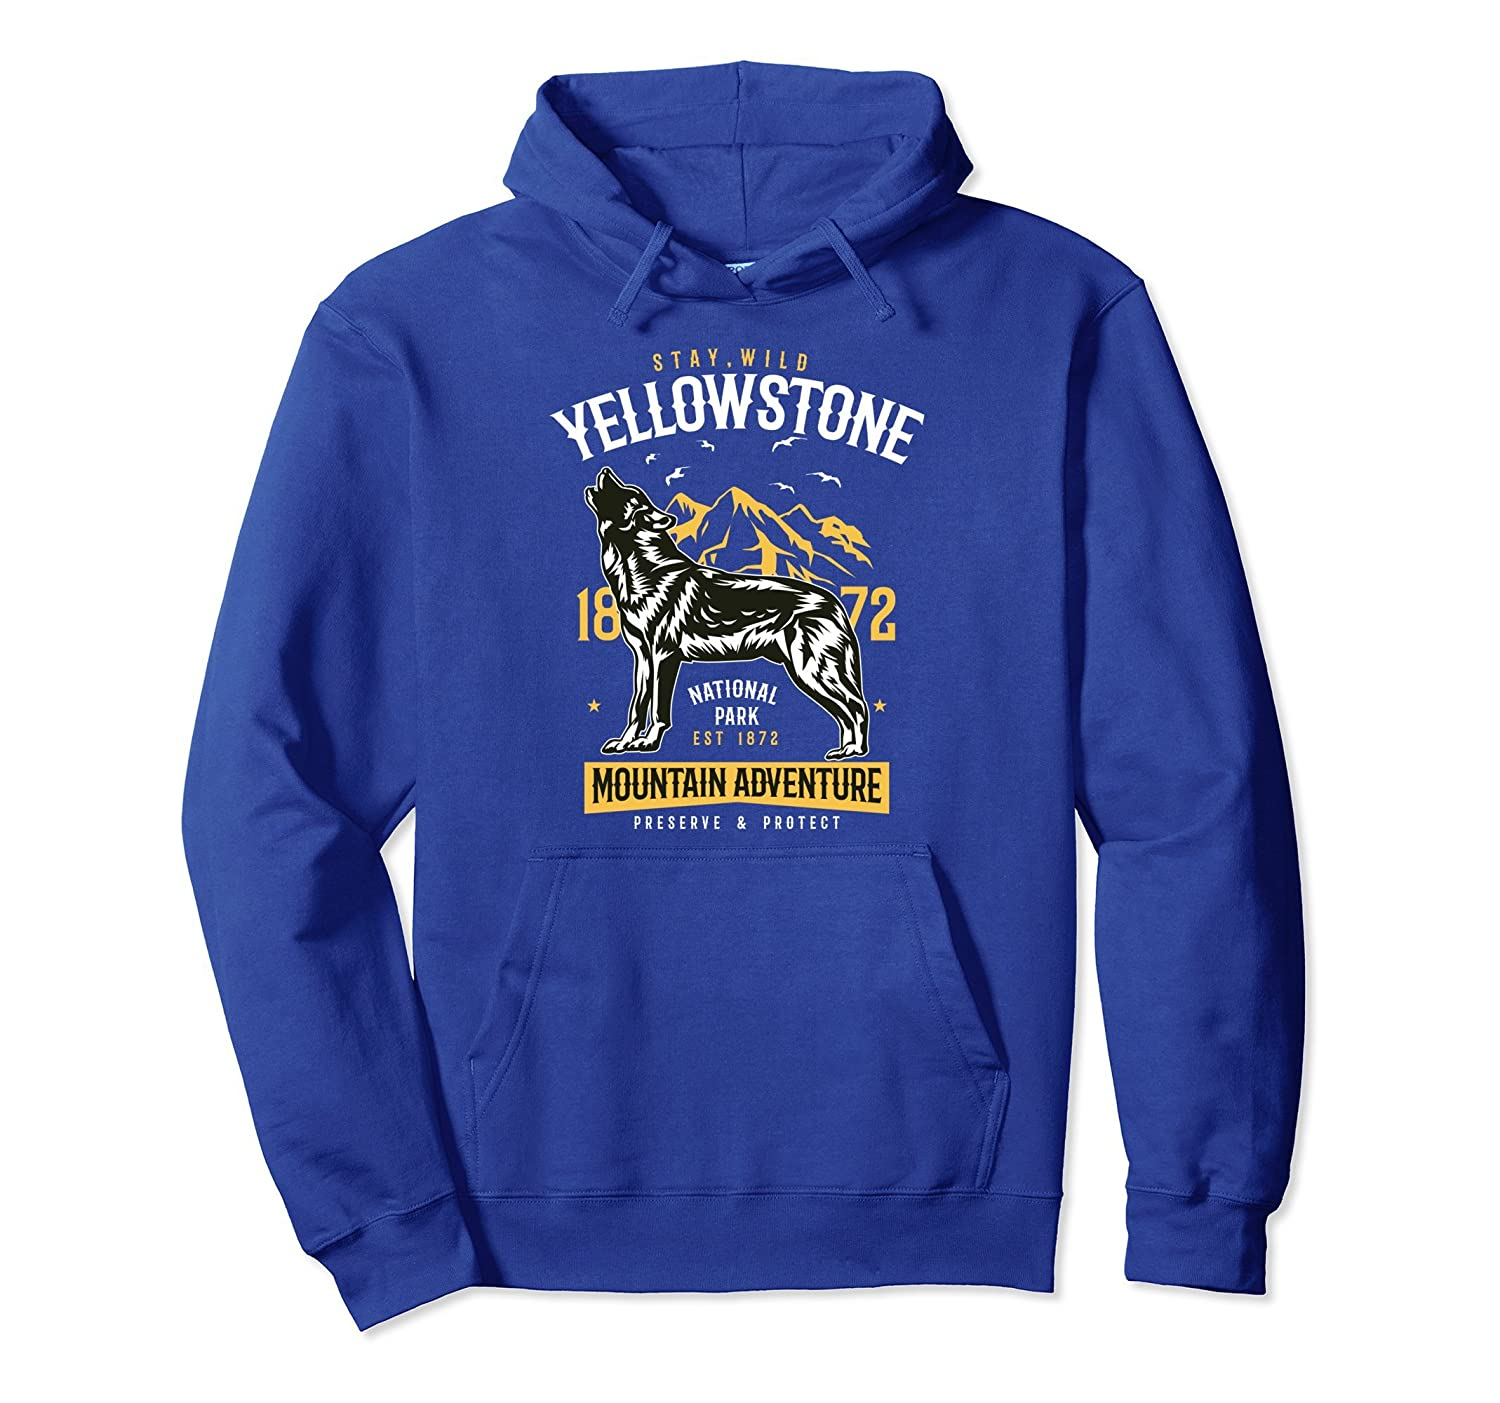 Yellowstone National Park Hoodie US Wolfe Camping Hiking-AZP